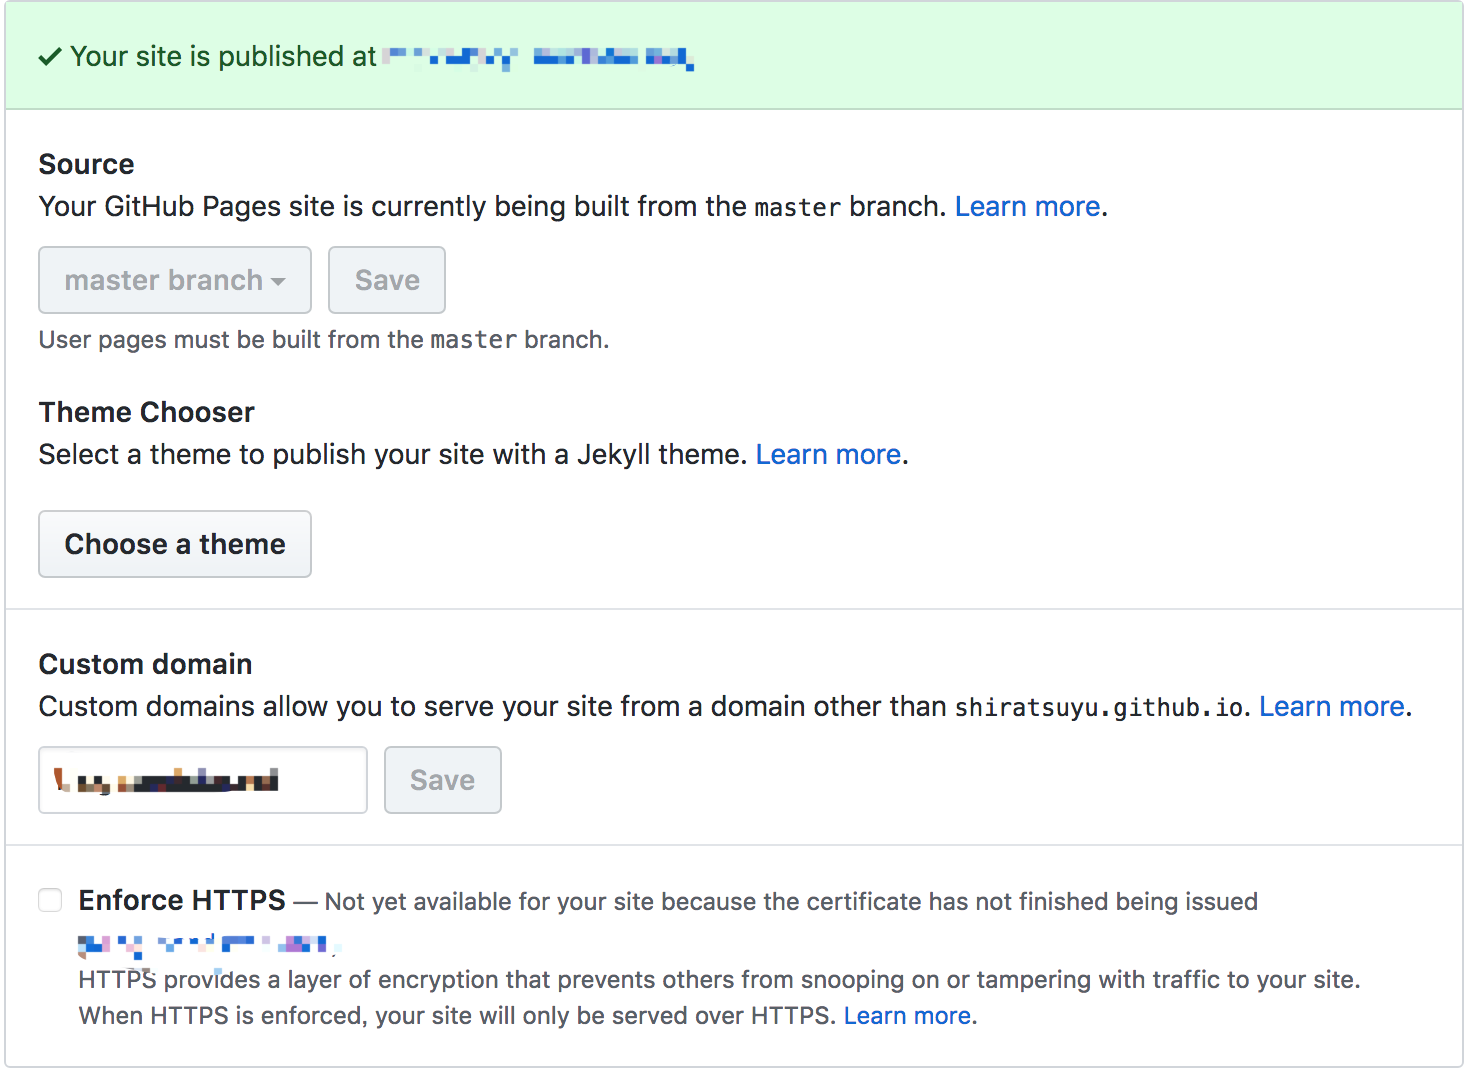 Developers - Add HTTPS support to Github Pages including custom